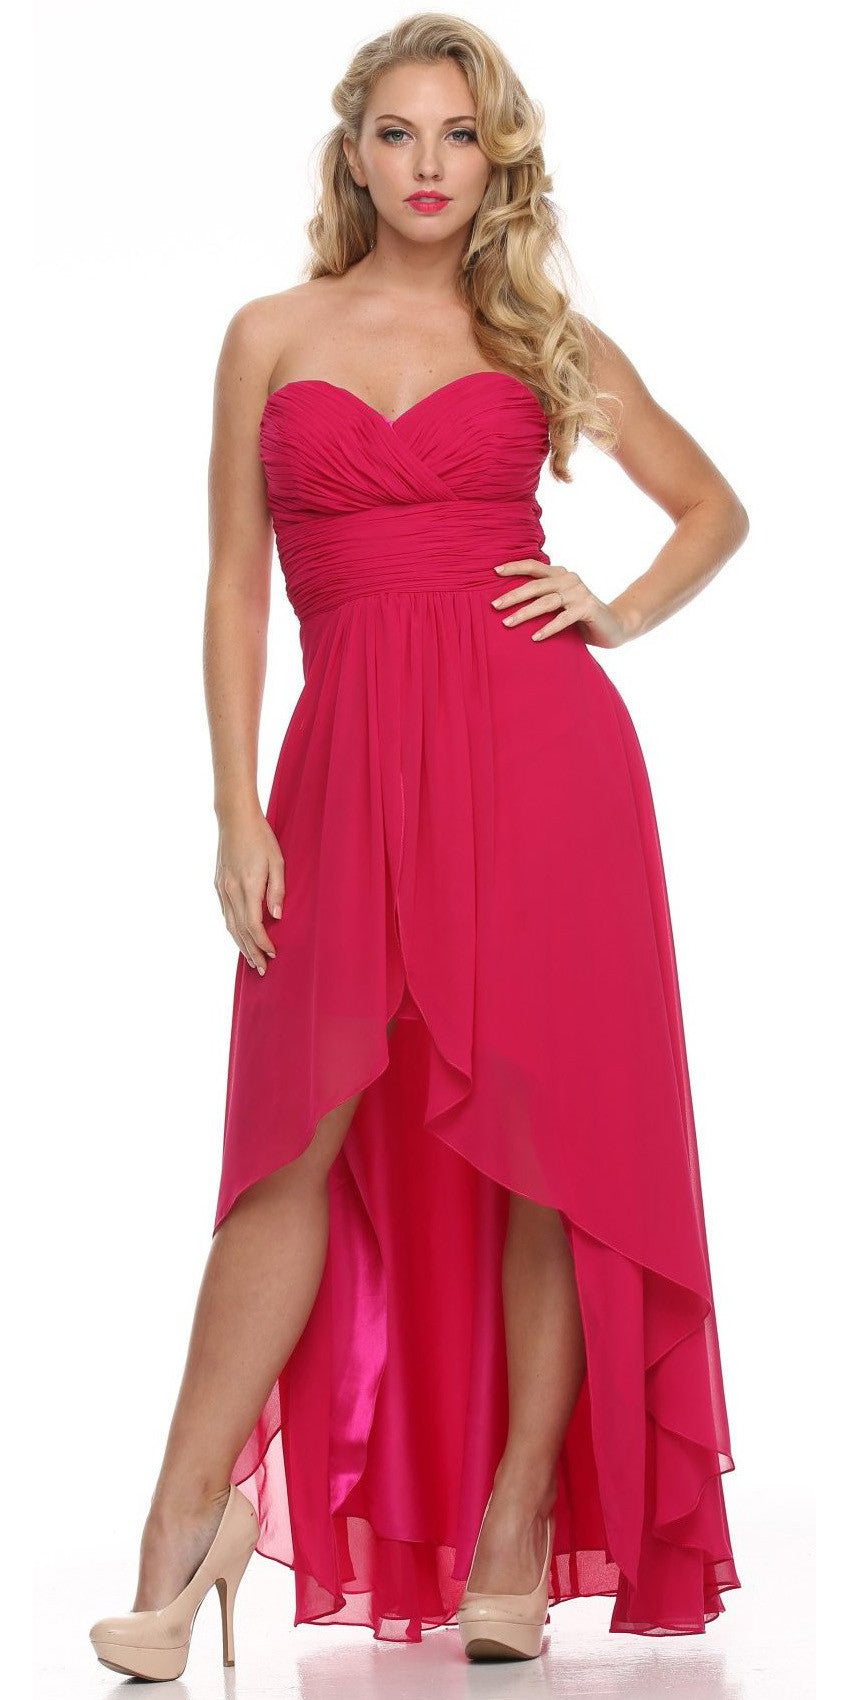 High low ruched bodice strapless layered turquoise bridesmaid high low ruched bodice strapless layered fuchsia bridesmaid dress ombrellifo Choice Image